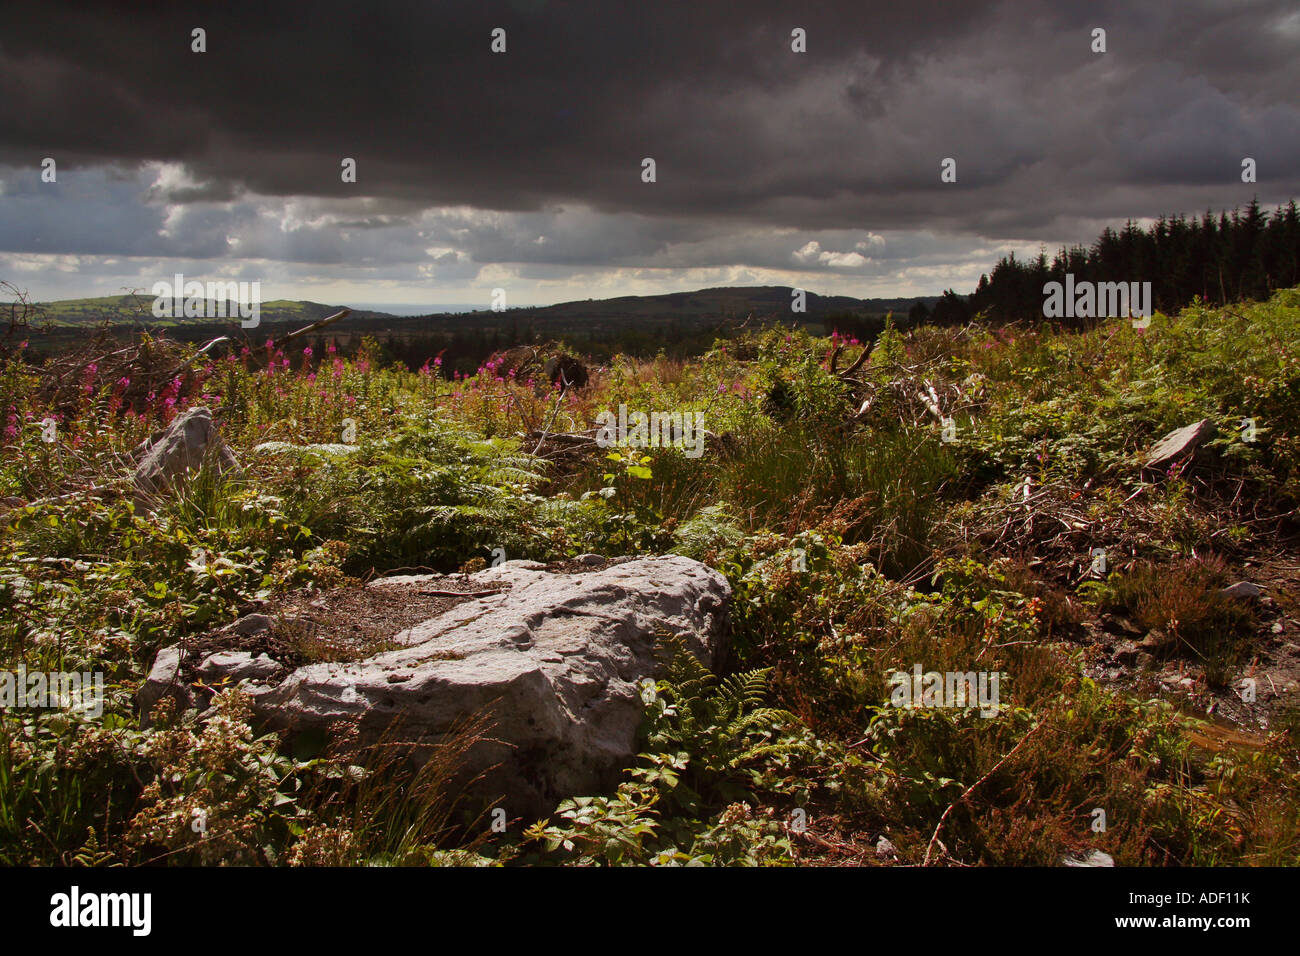 North wales Forestry comission land scape - Stock Image